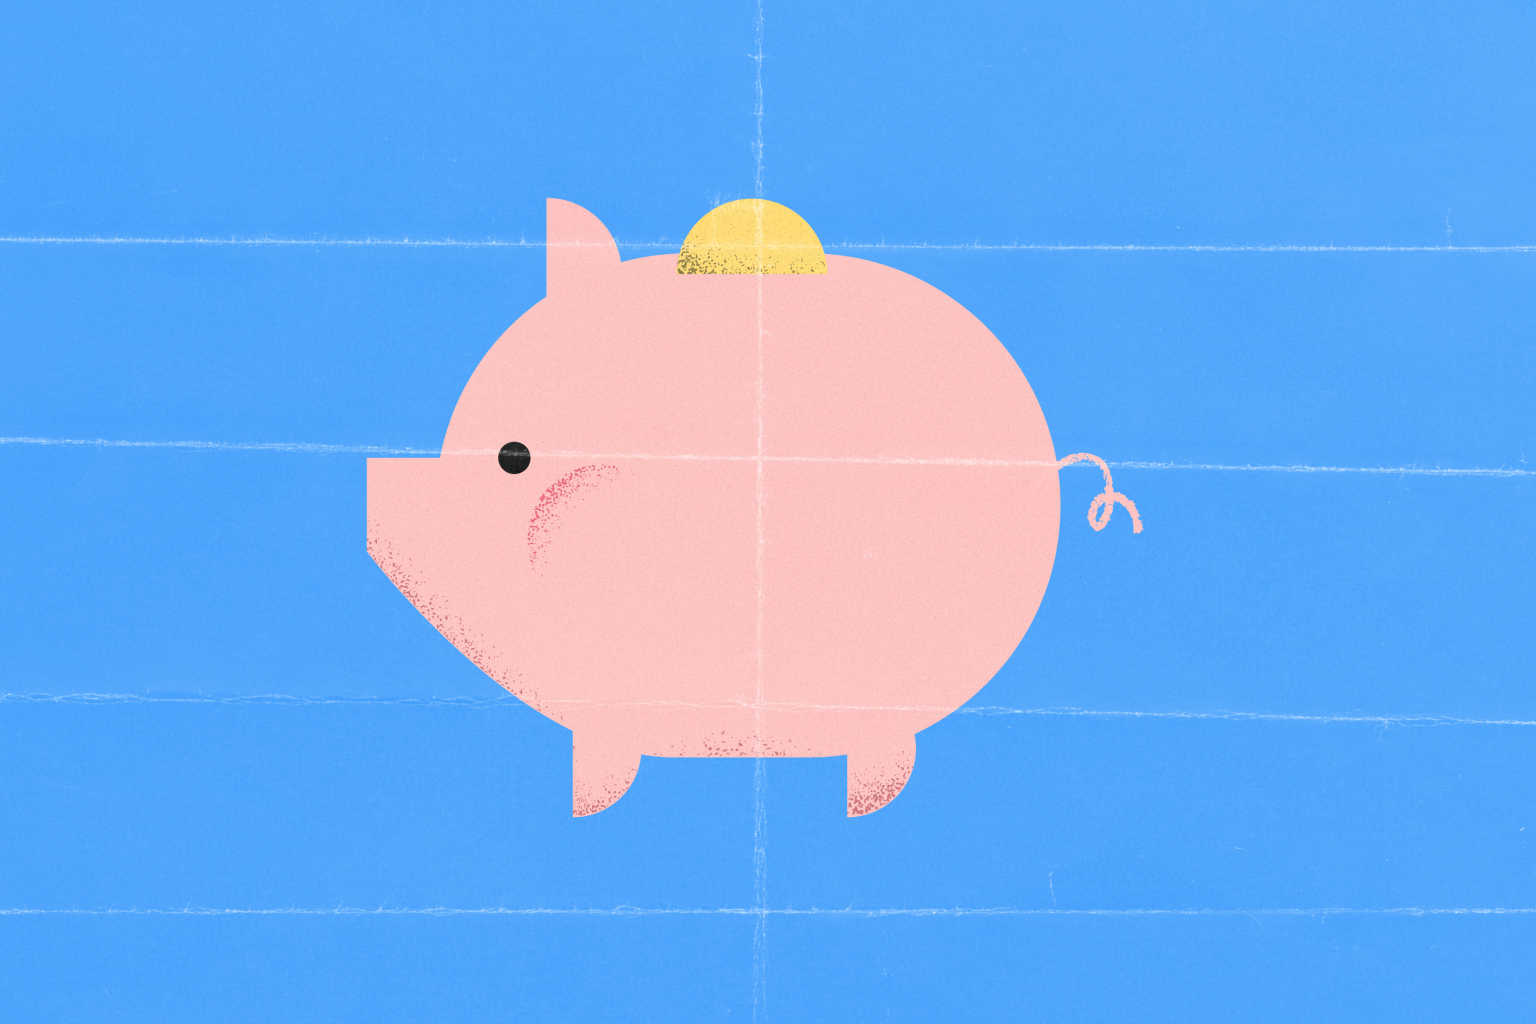 piggy-bank-blue-background-illustration